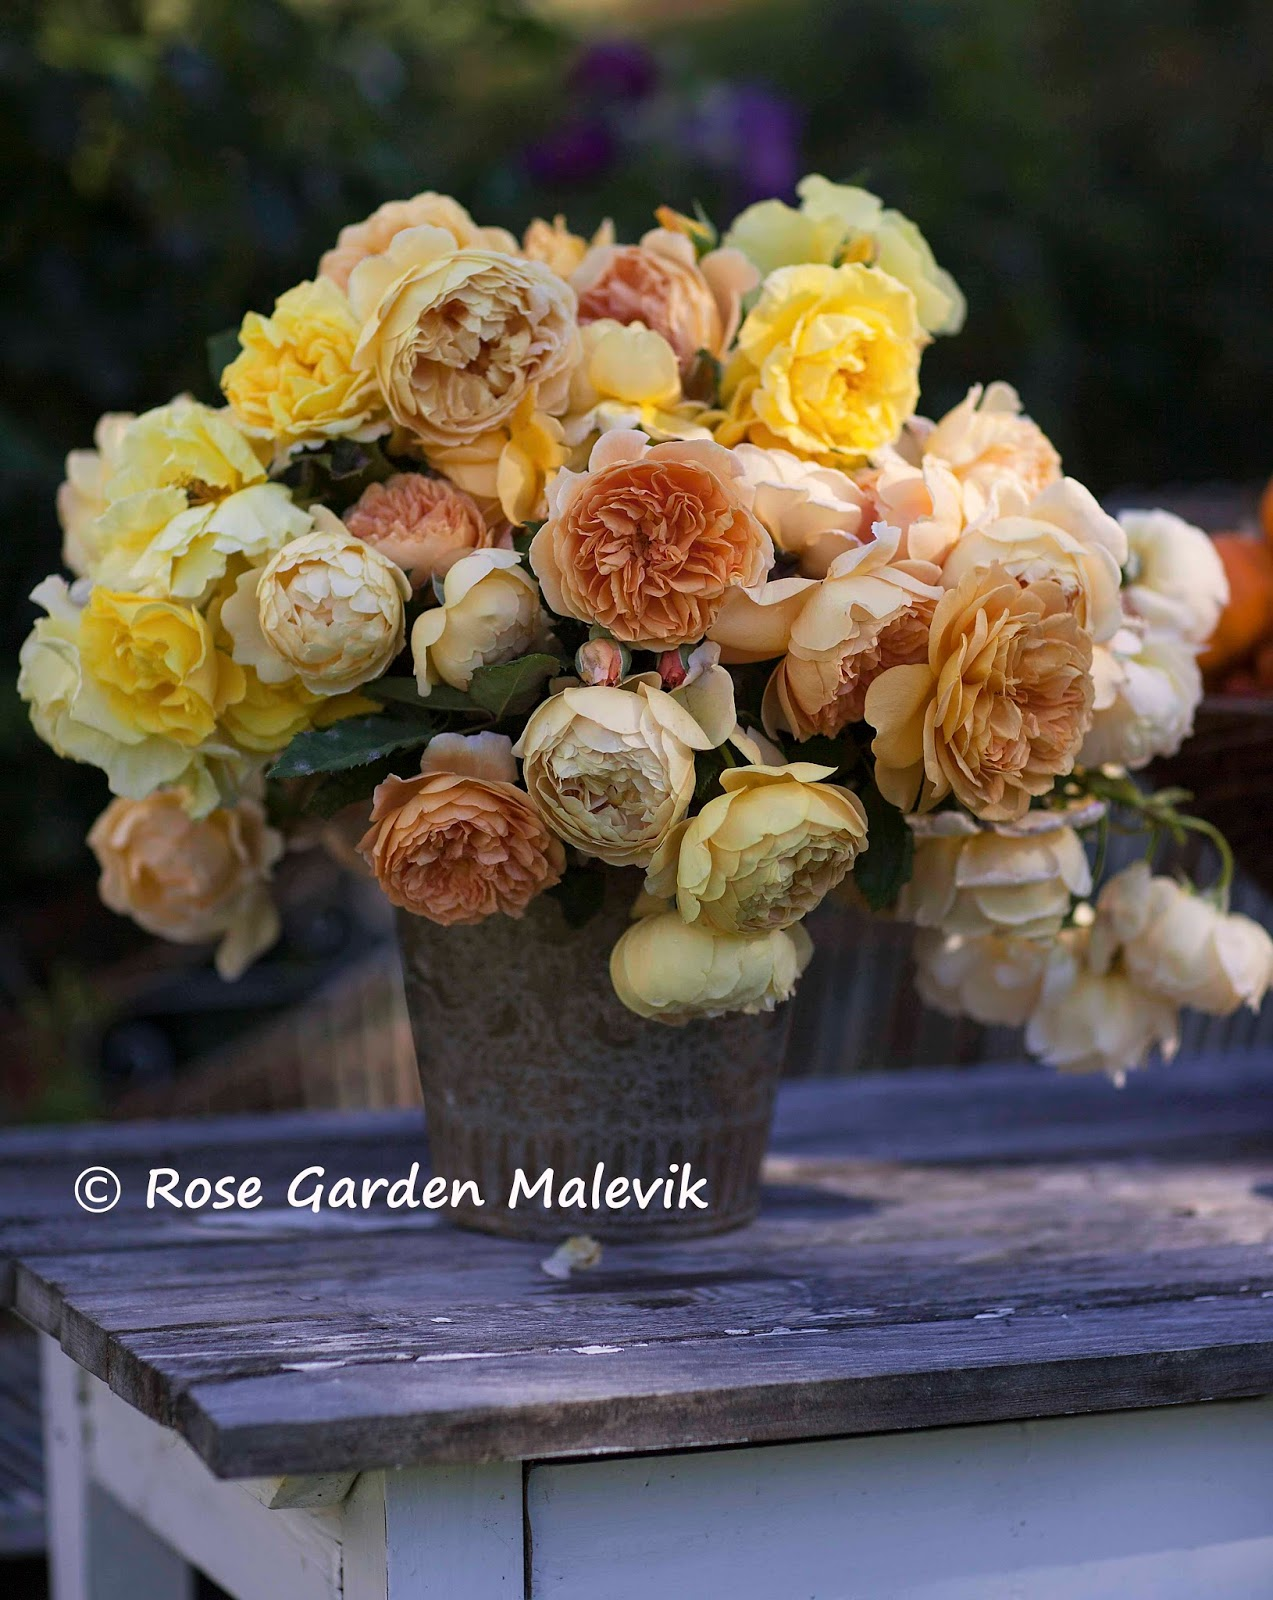 Rose garden malevik: rosor och pumpor ~ roses and pumpkins